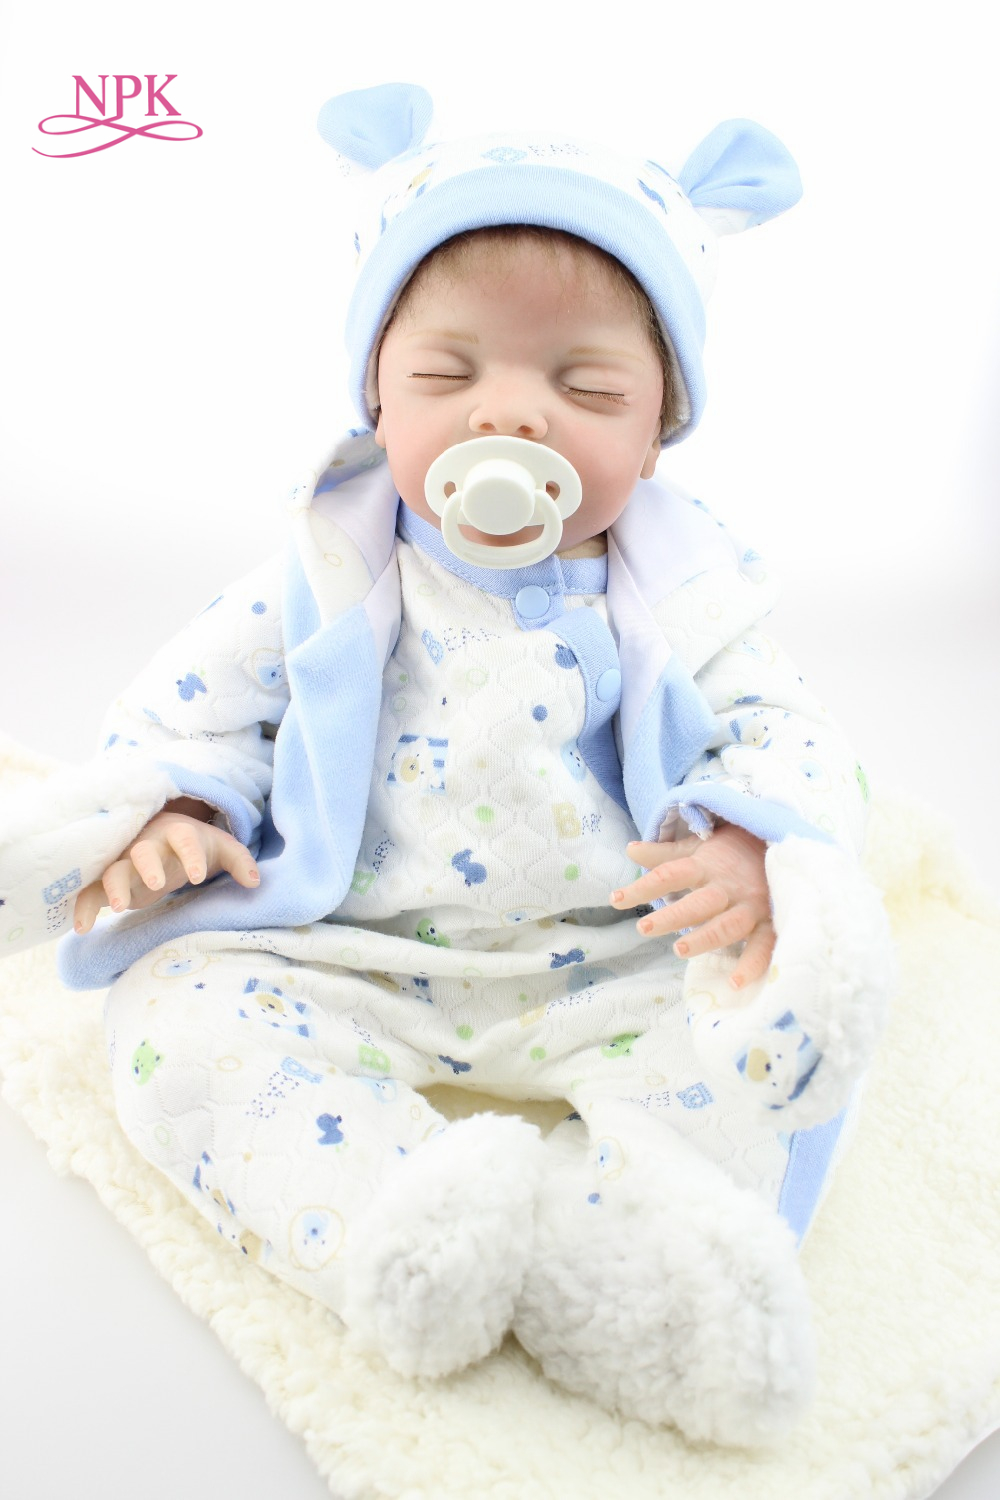 NPK reborn doll with soft real gentle touch hotsale lifelike reborn baby dolls fashion doll silicone vinyl for child все цены